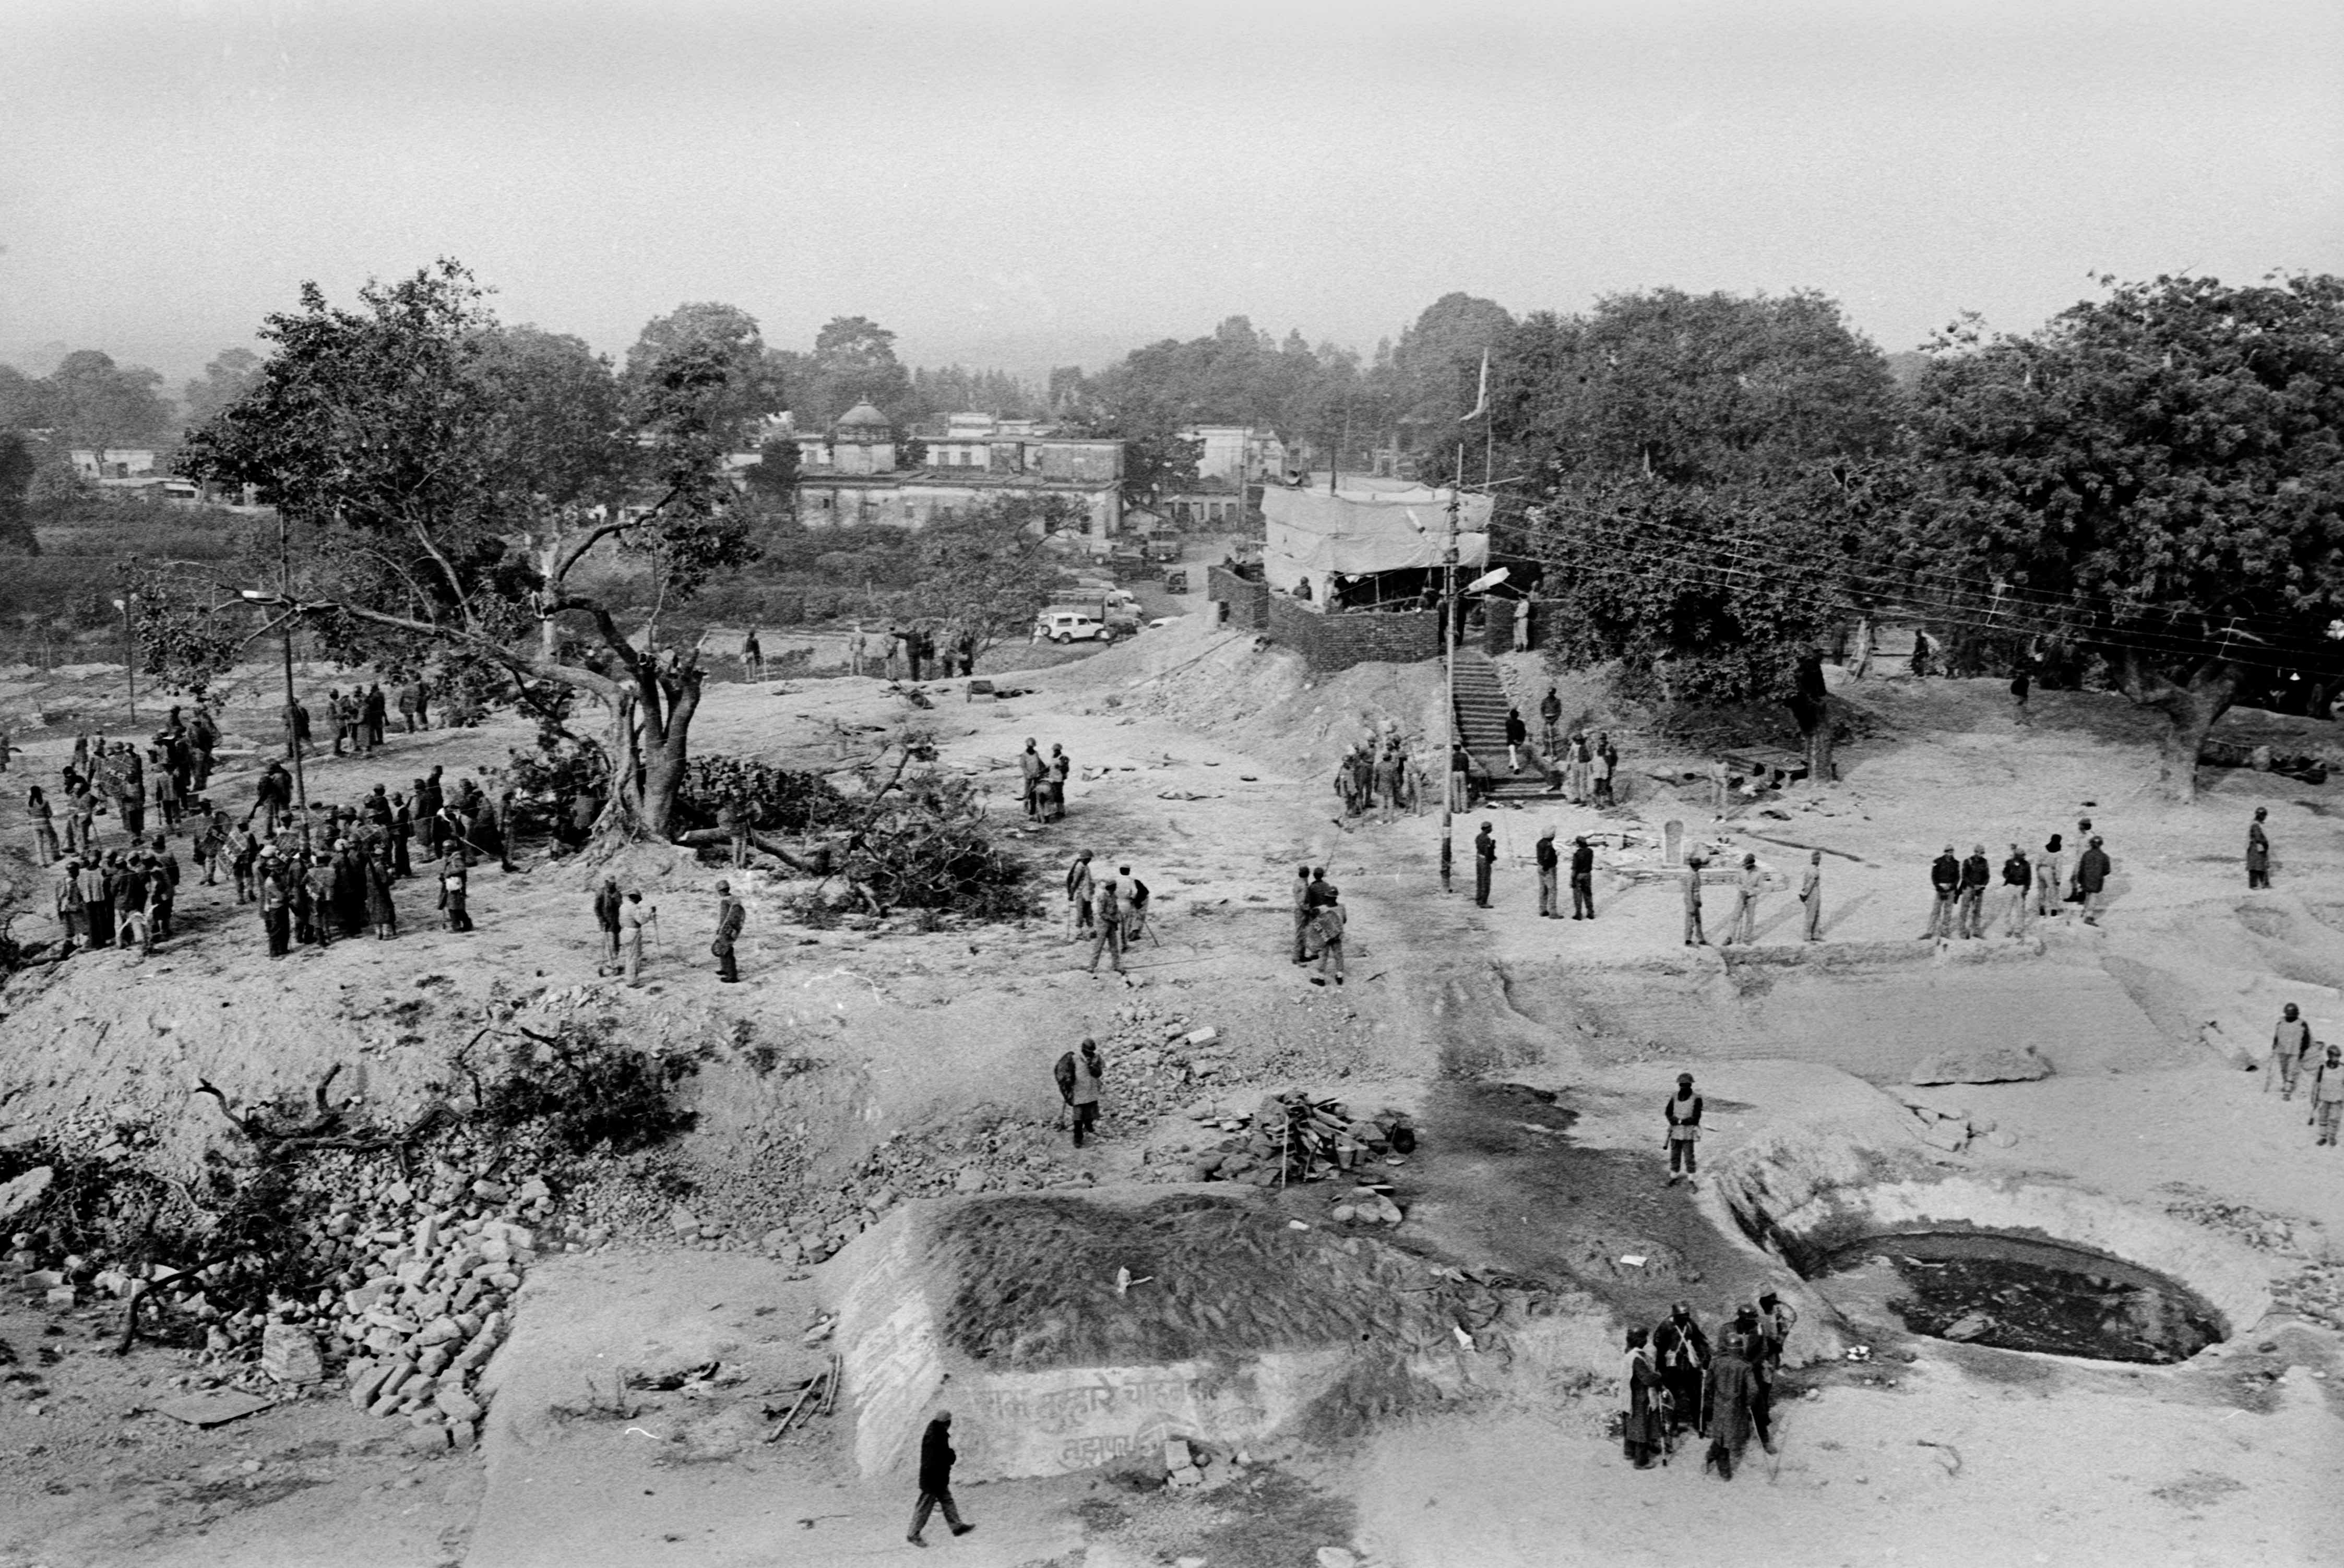 A view of the ground where the Babri Masjid stood just a day before. Credit: T. Narayan